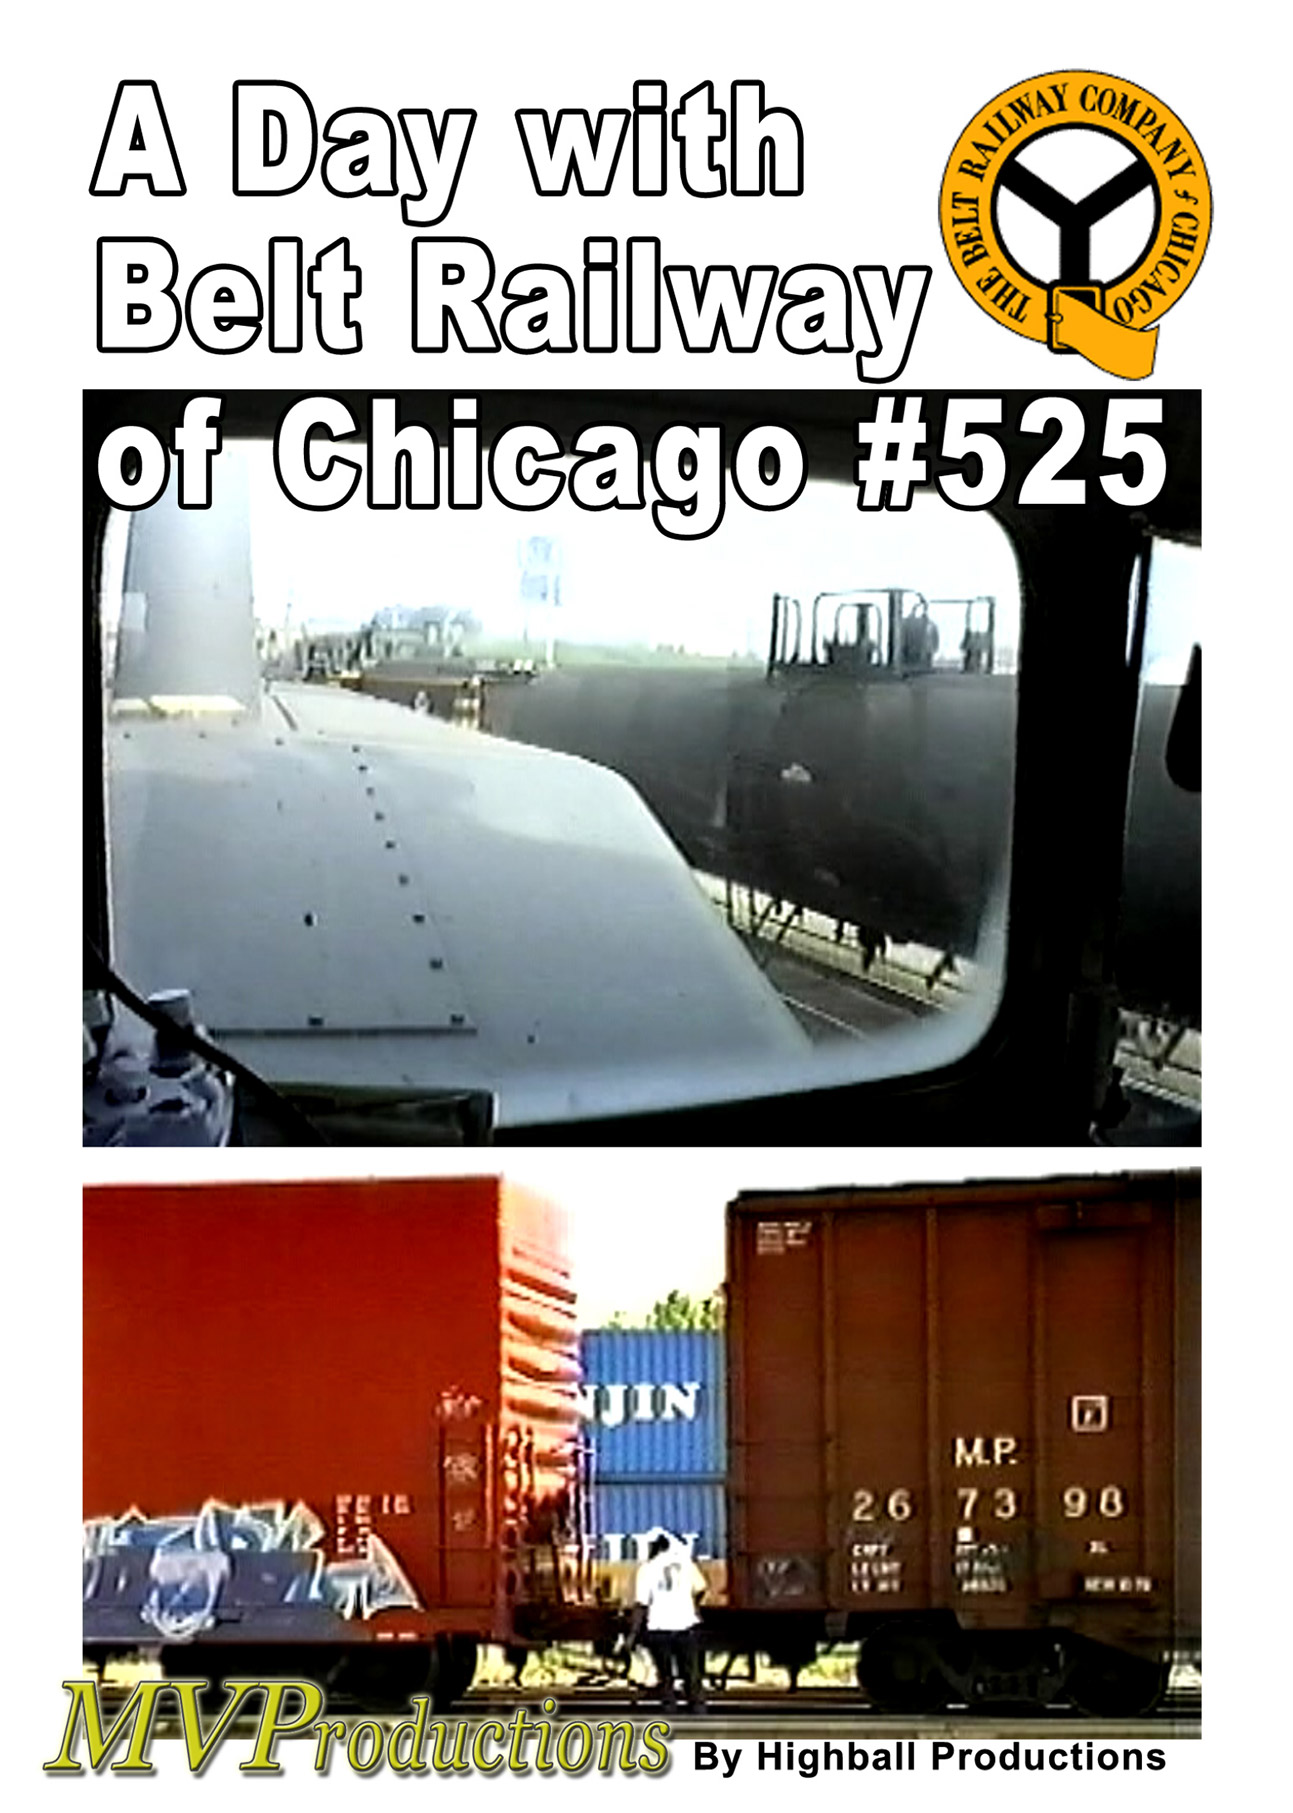 A Day with Belt Railway of Chicago #525 Train Video Midwest Video Productions MV525 601577879930